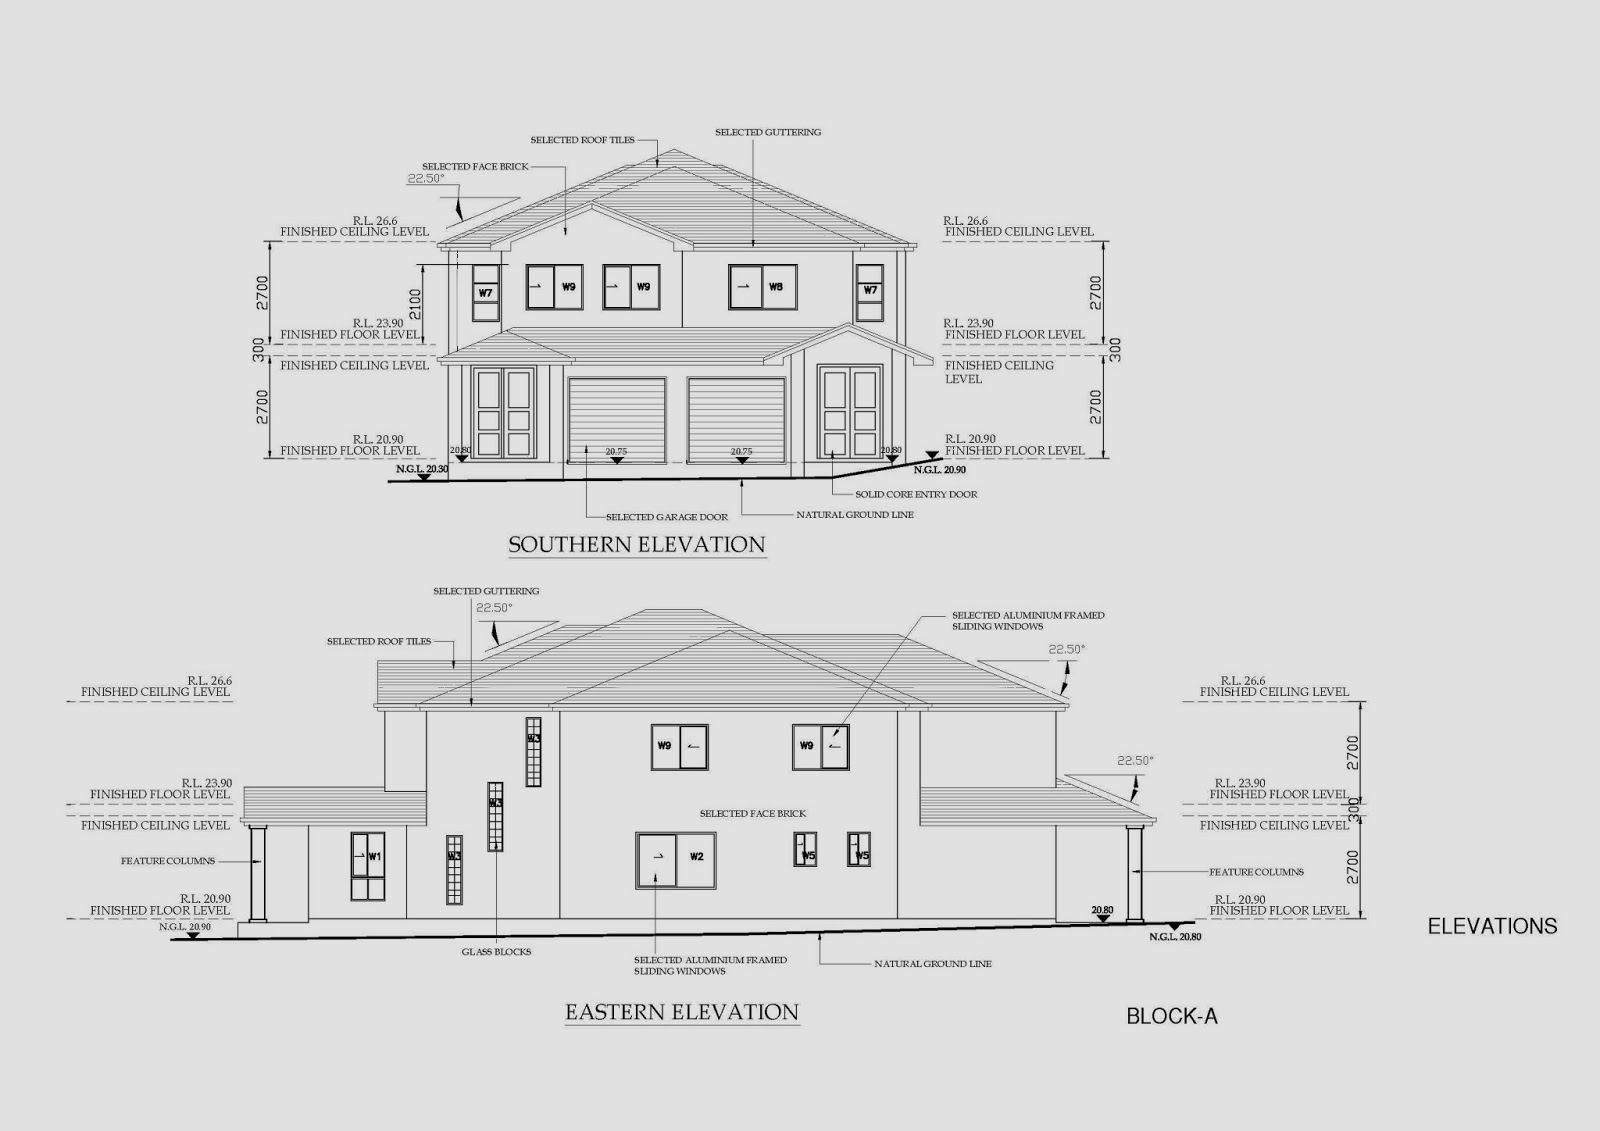 Elevation Floor Plan Autocad : Australian architectural cad drafting project